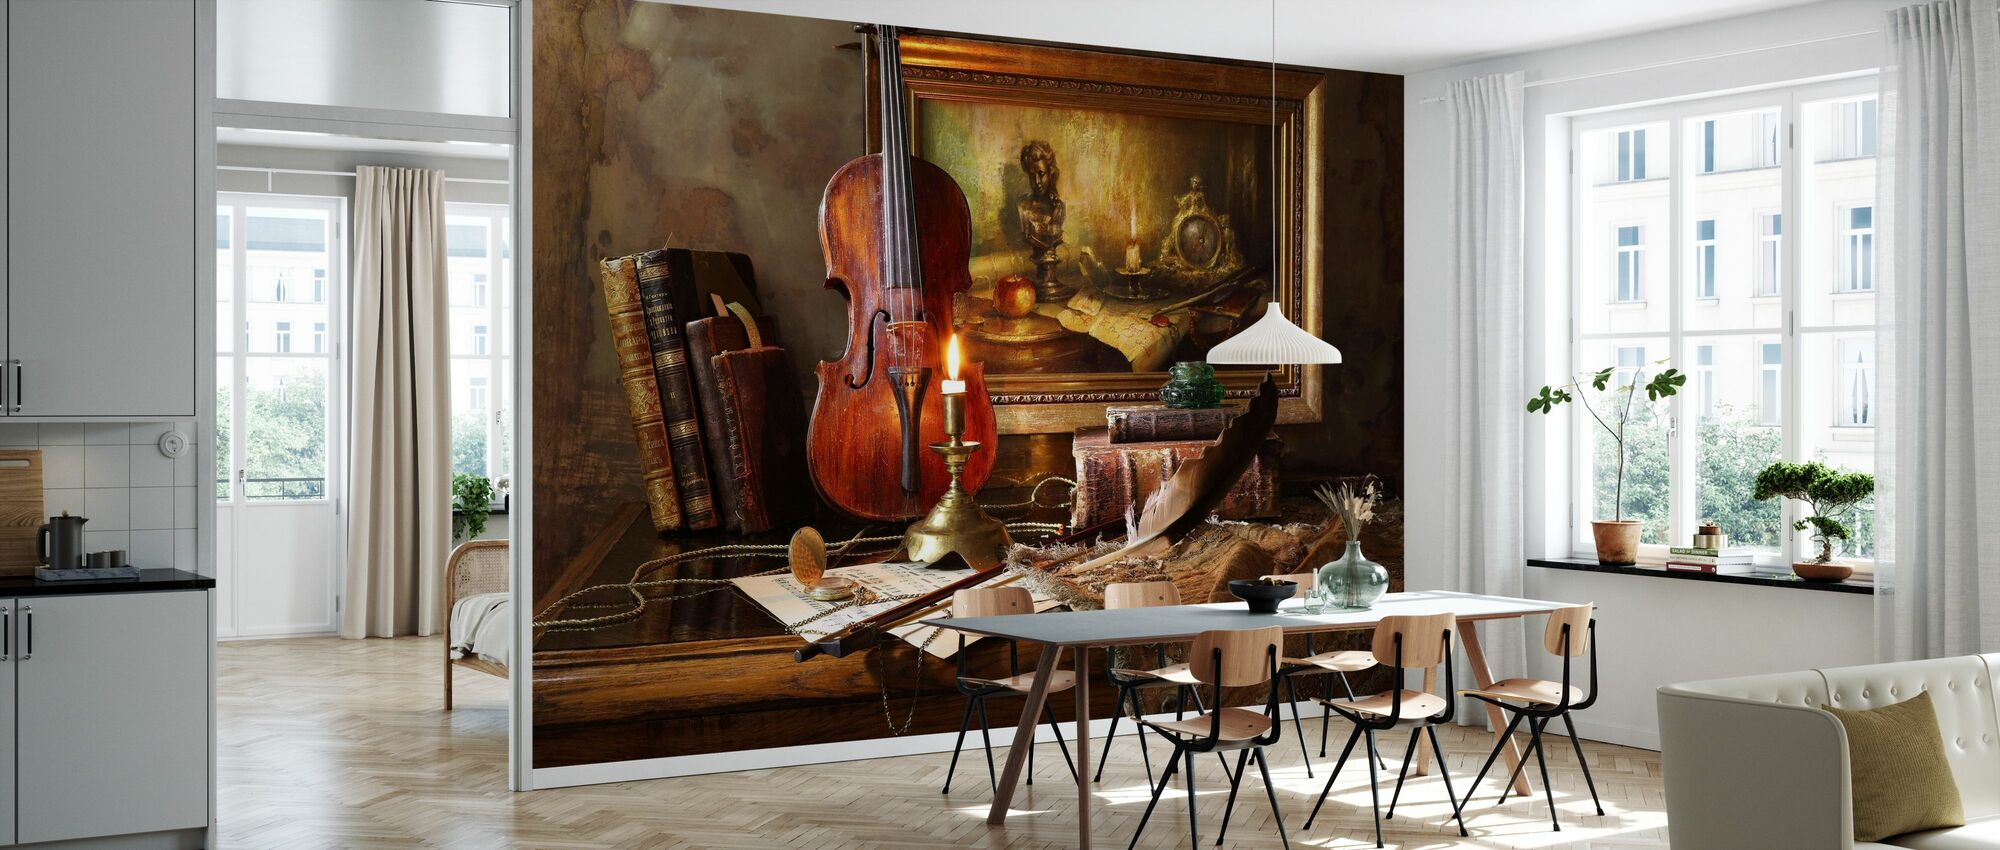 Still Life with Violin and Painting - Wallpaper - Kitchen